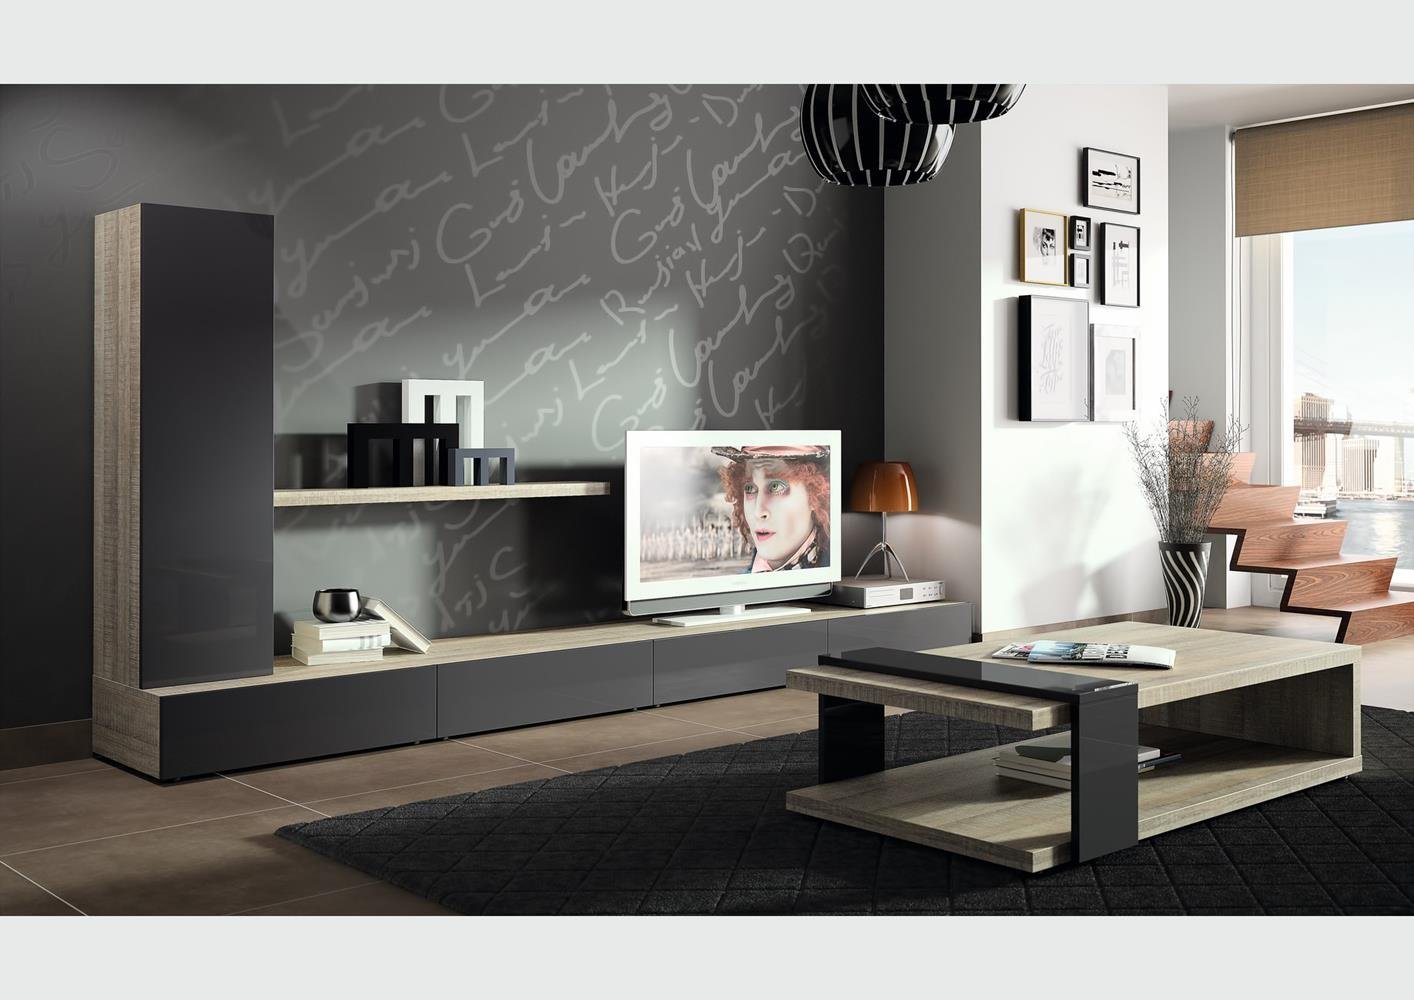 Table Tv Avec Support Maison Design Wiblia Com # Meuble Tv Avec Support Tv